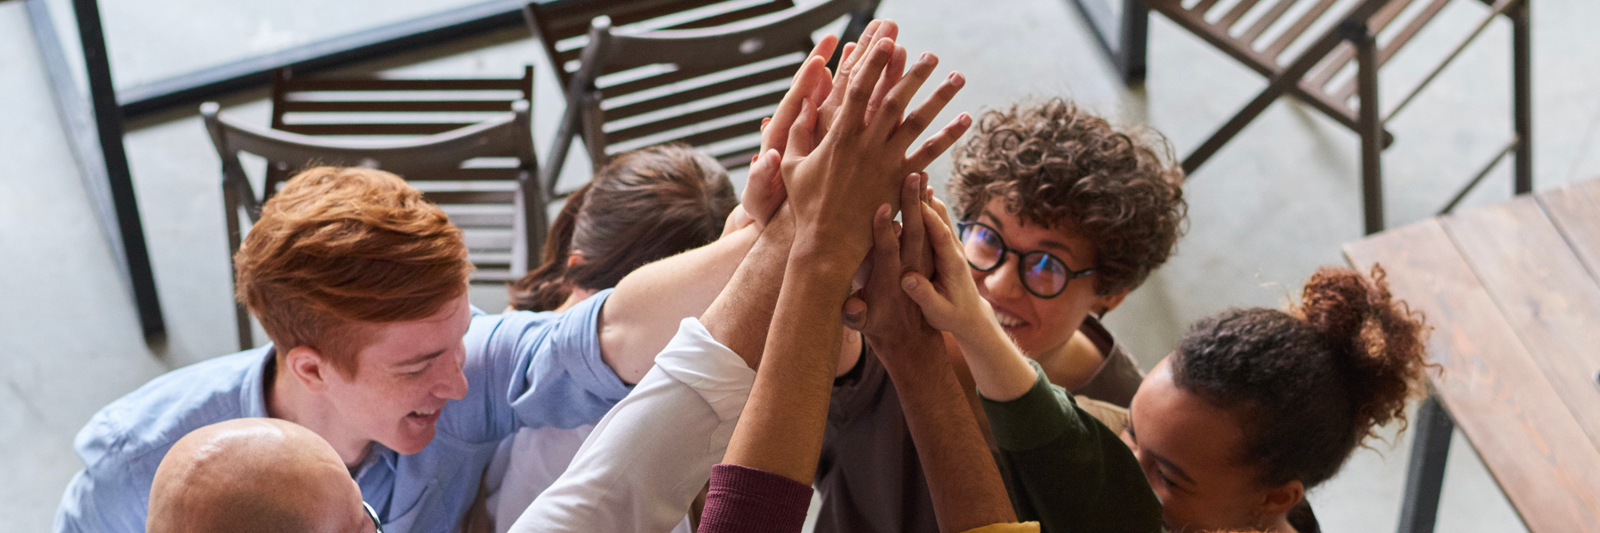 A diverse group of students giving each other high-fives